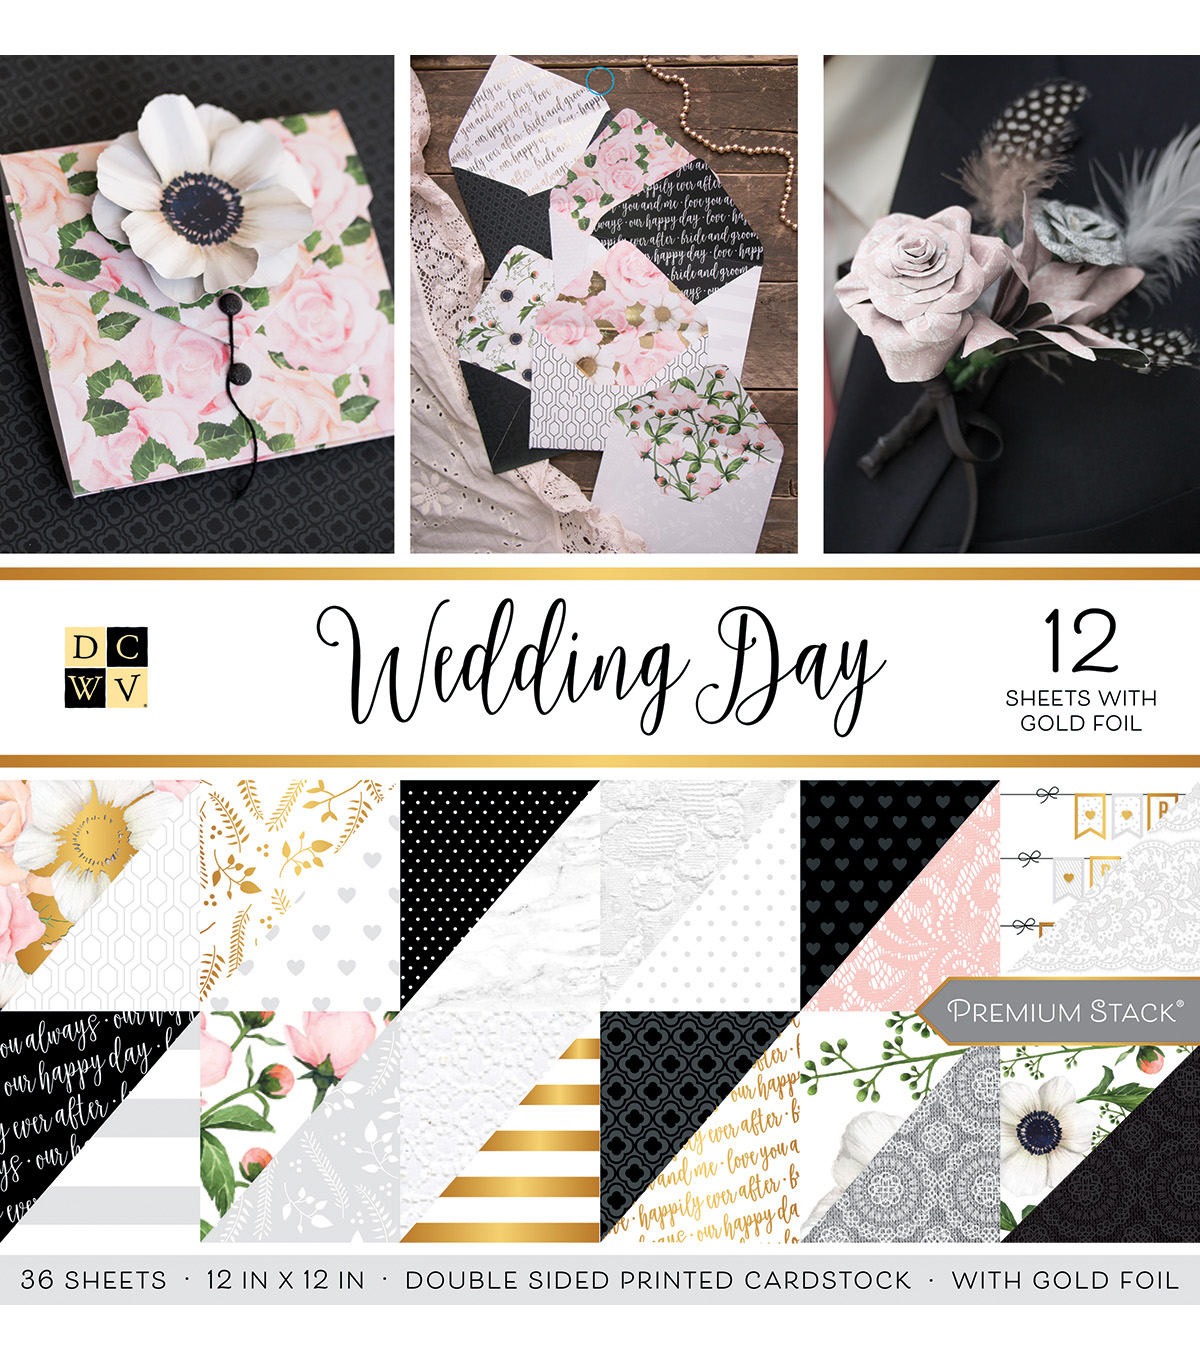 DCWV 36 Pack 12''x12'' Premium Stack Printed Cardstock-Wedding Day